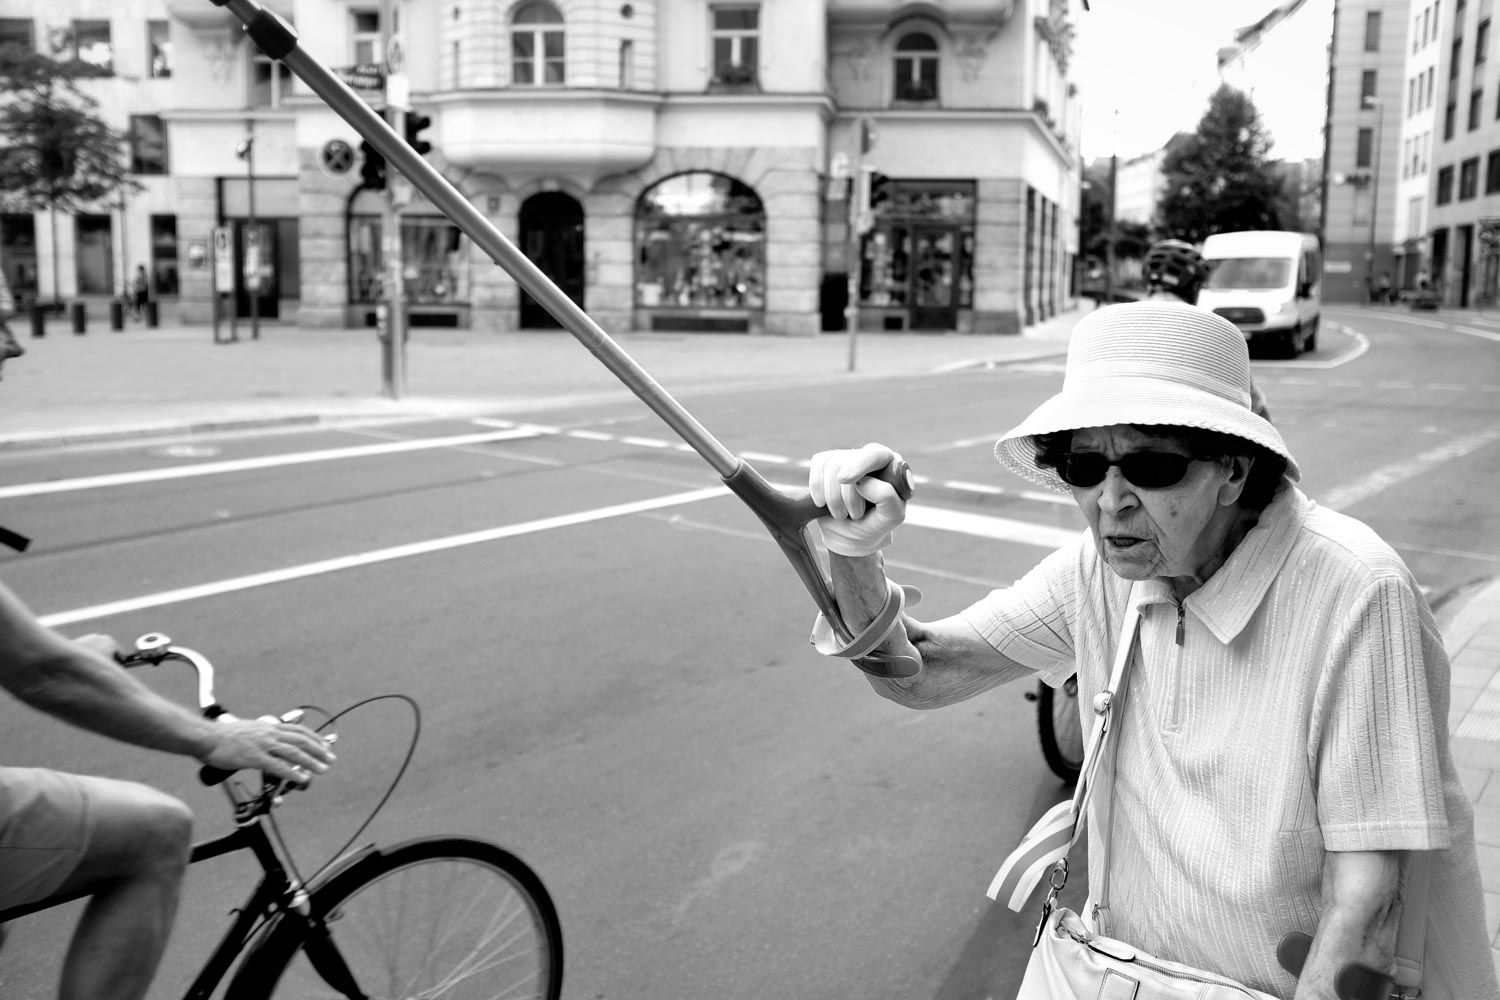 street street photo street photography life is street Sebastian Hermann photographie de rue